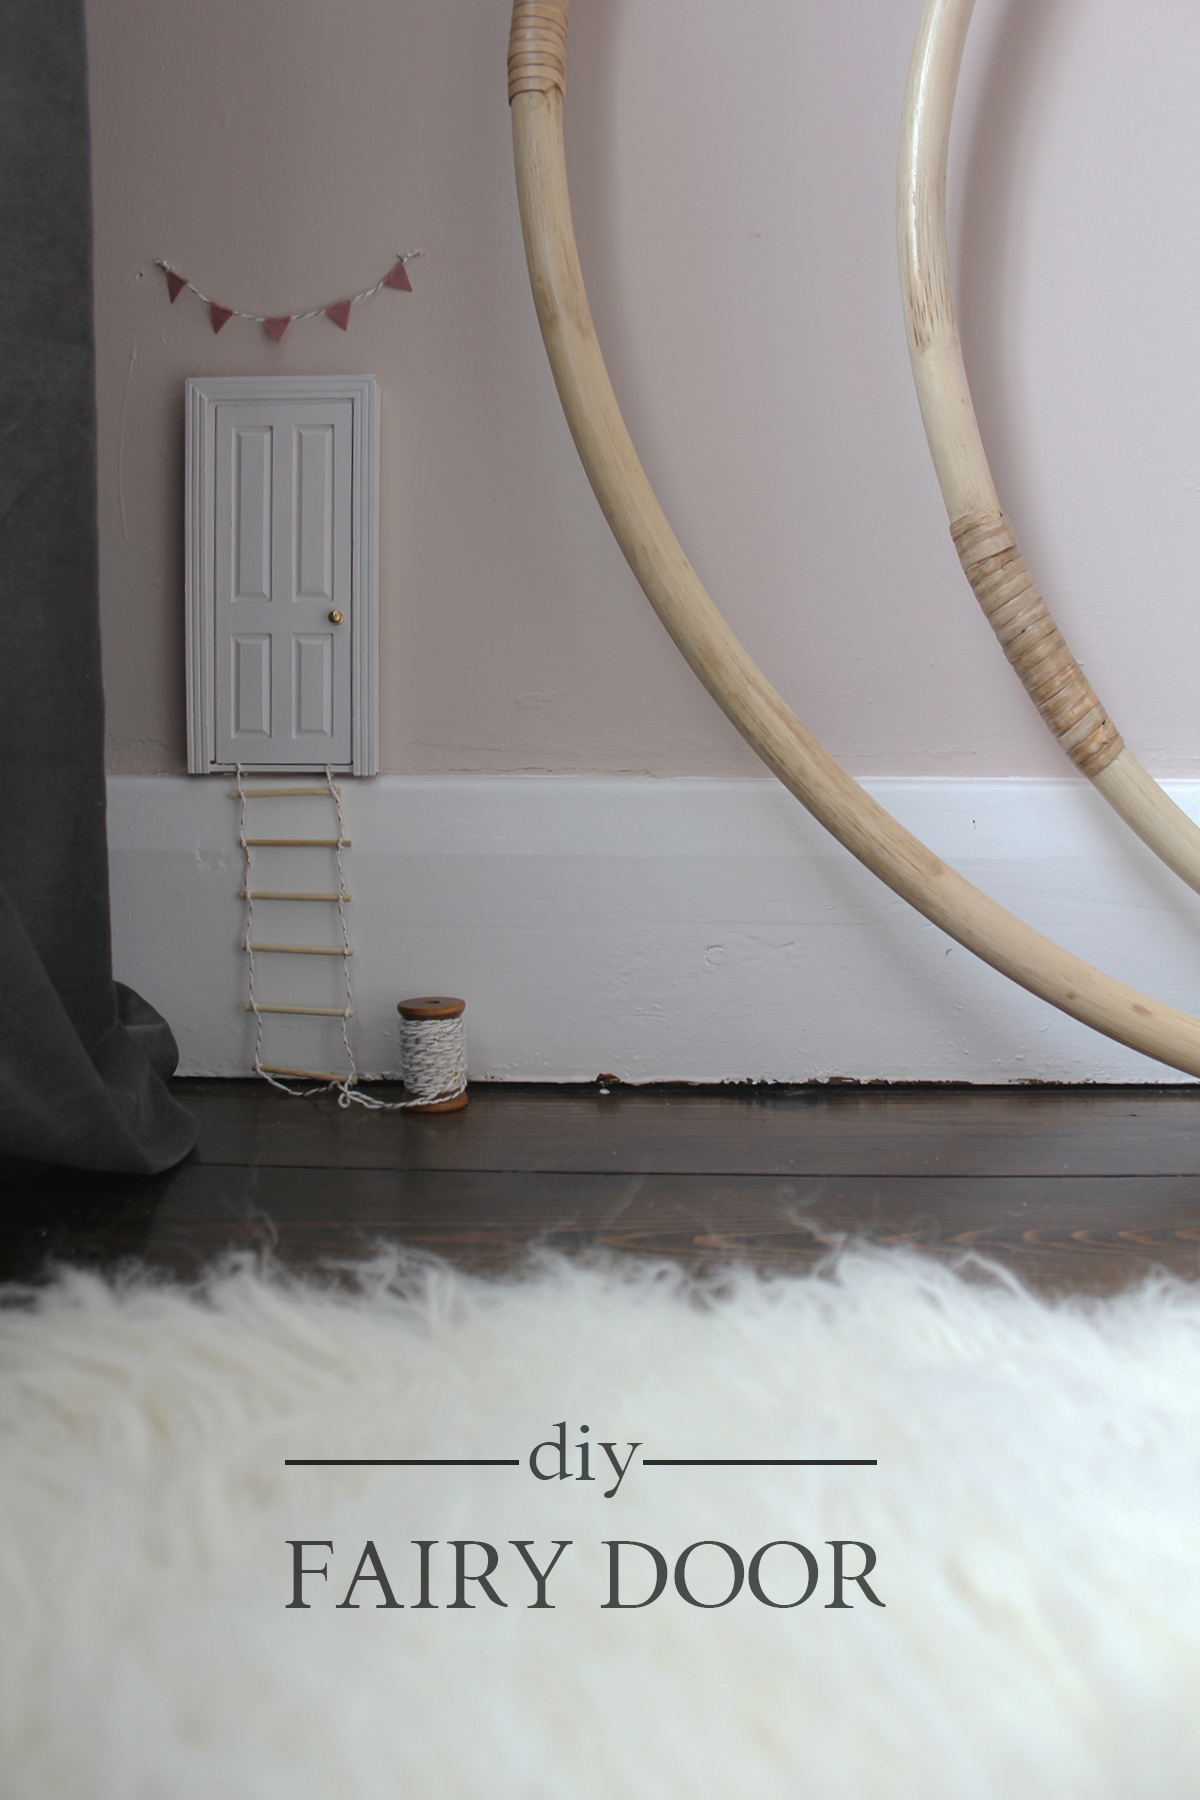 Preciously Me blog : DIY Adorable Fairy Door using a simple dollhouse door